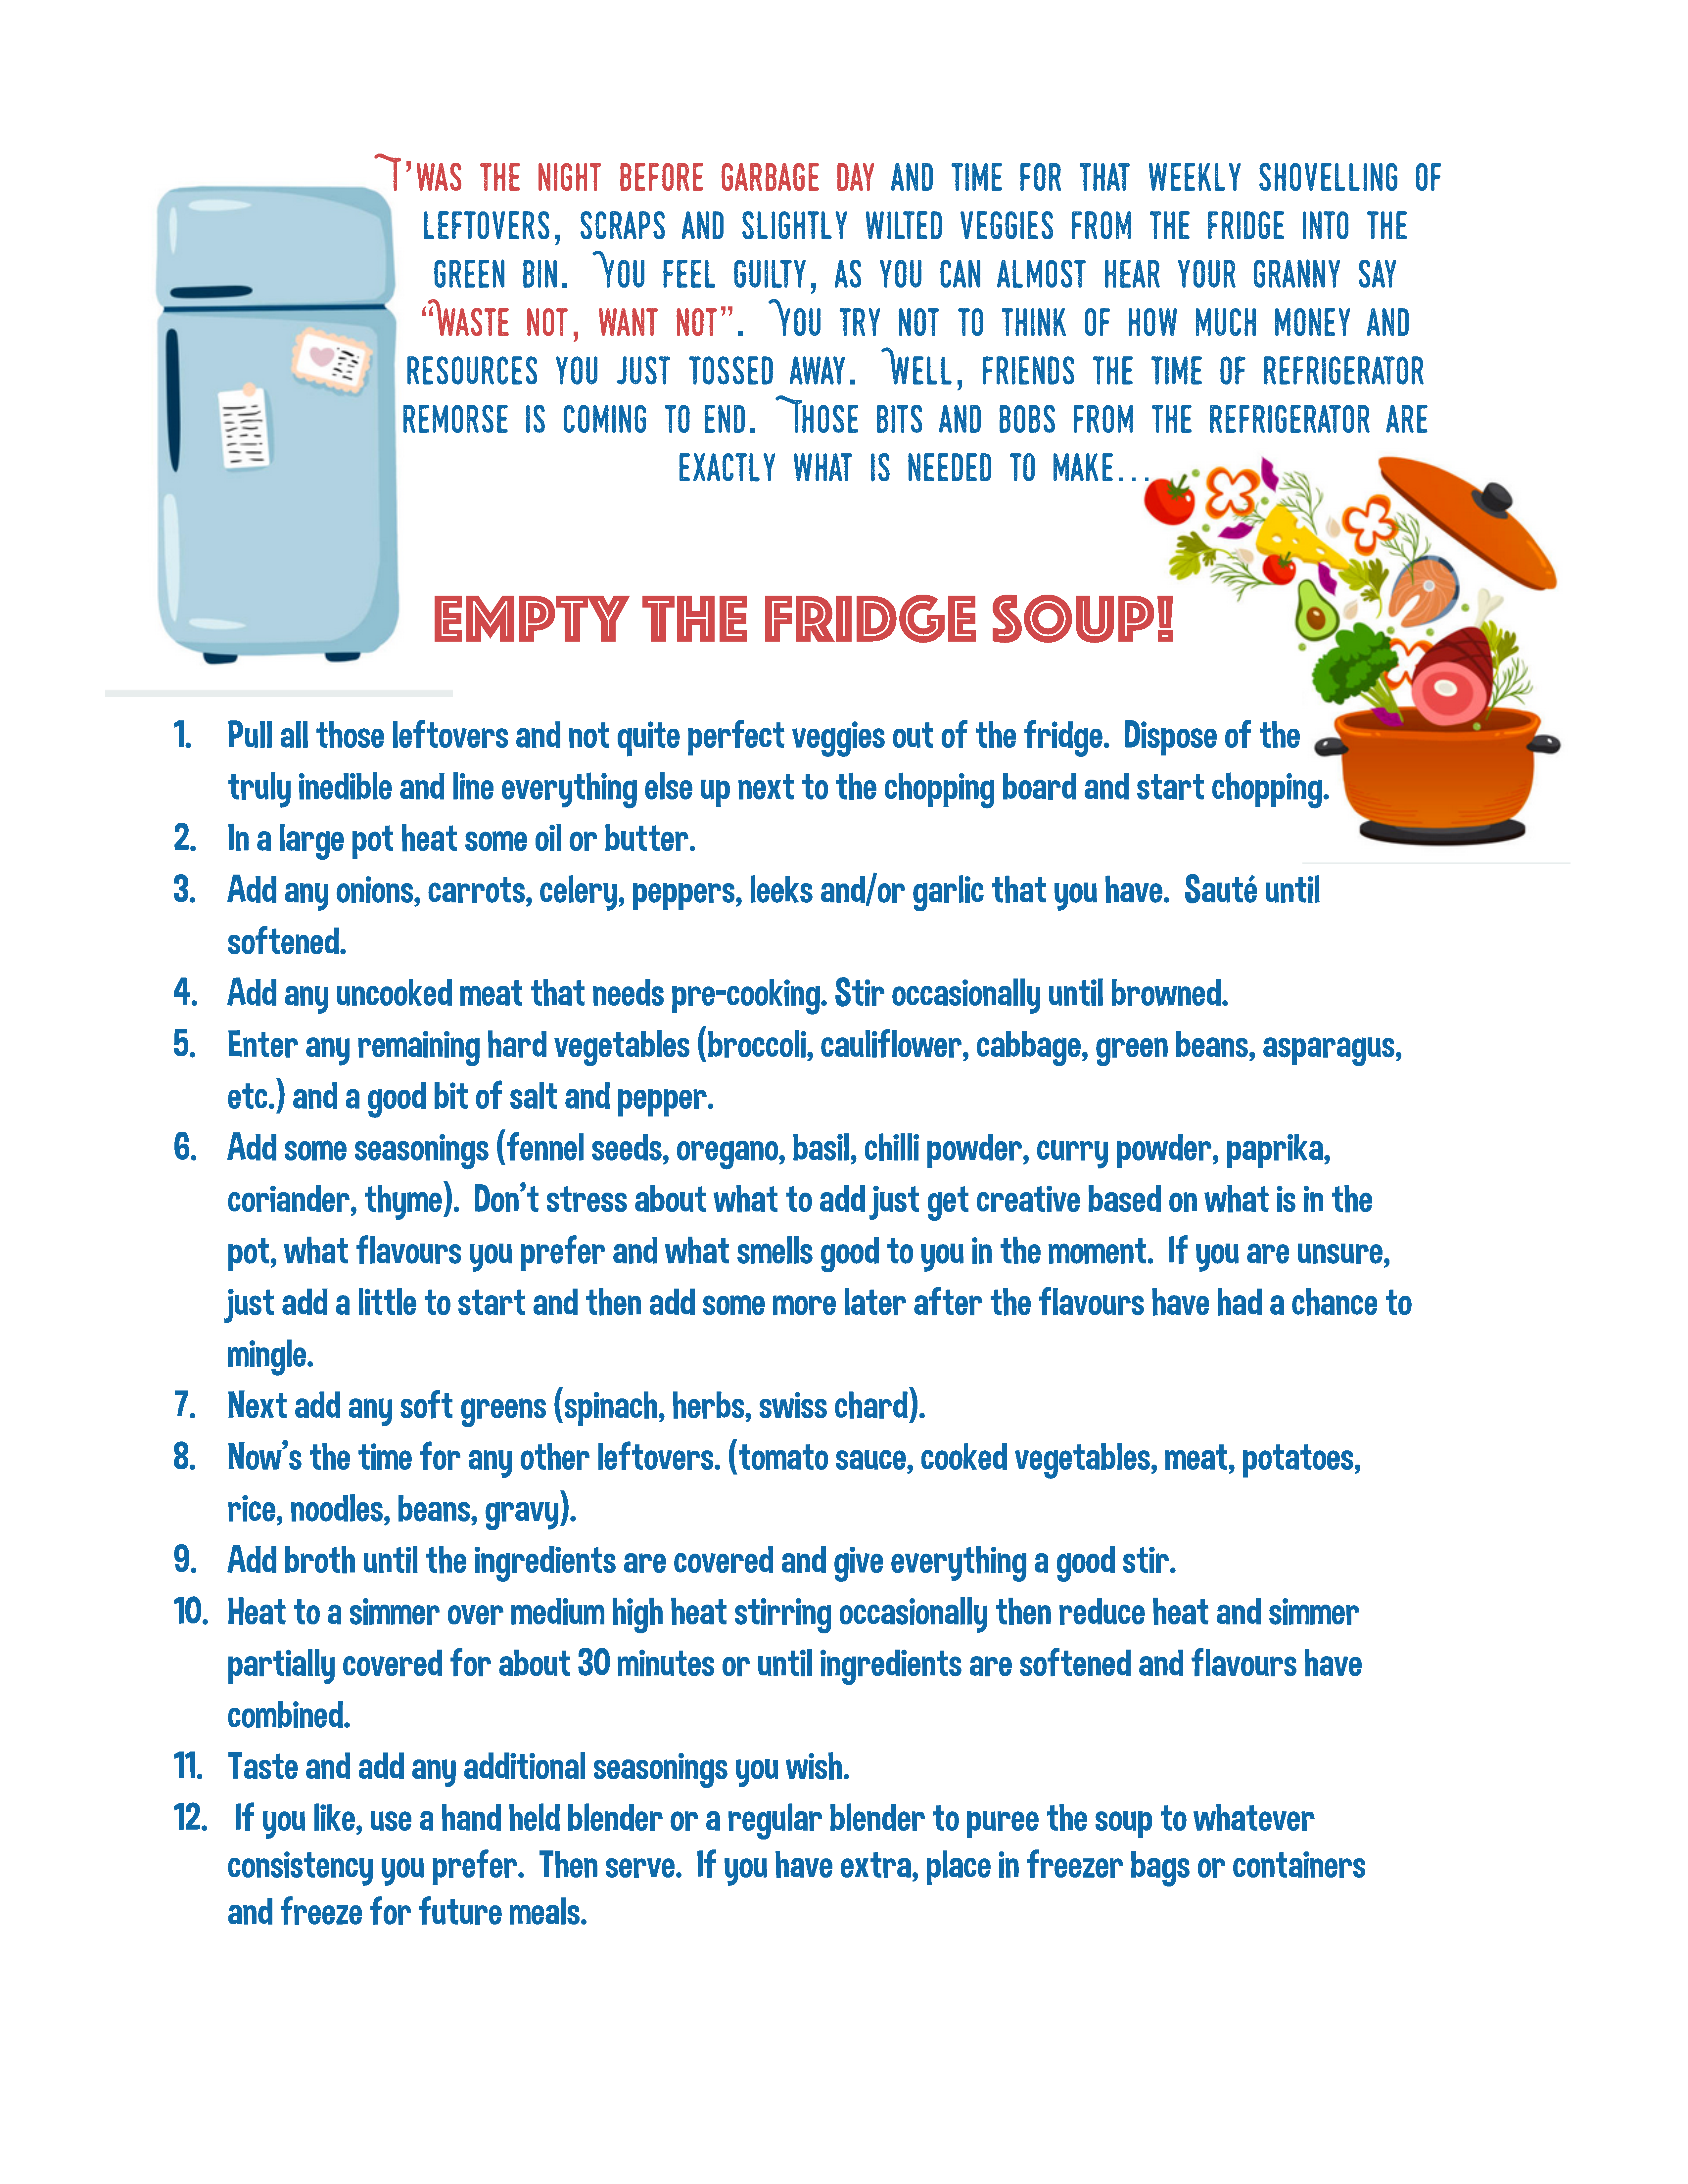 Take Five for the Earth - Empty the Fridge Soup